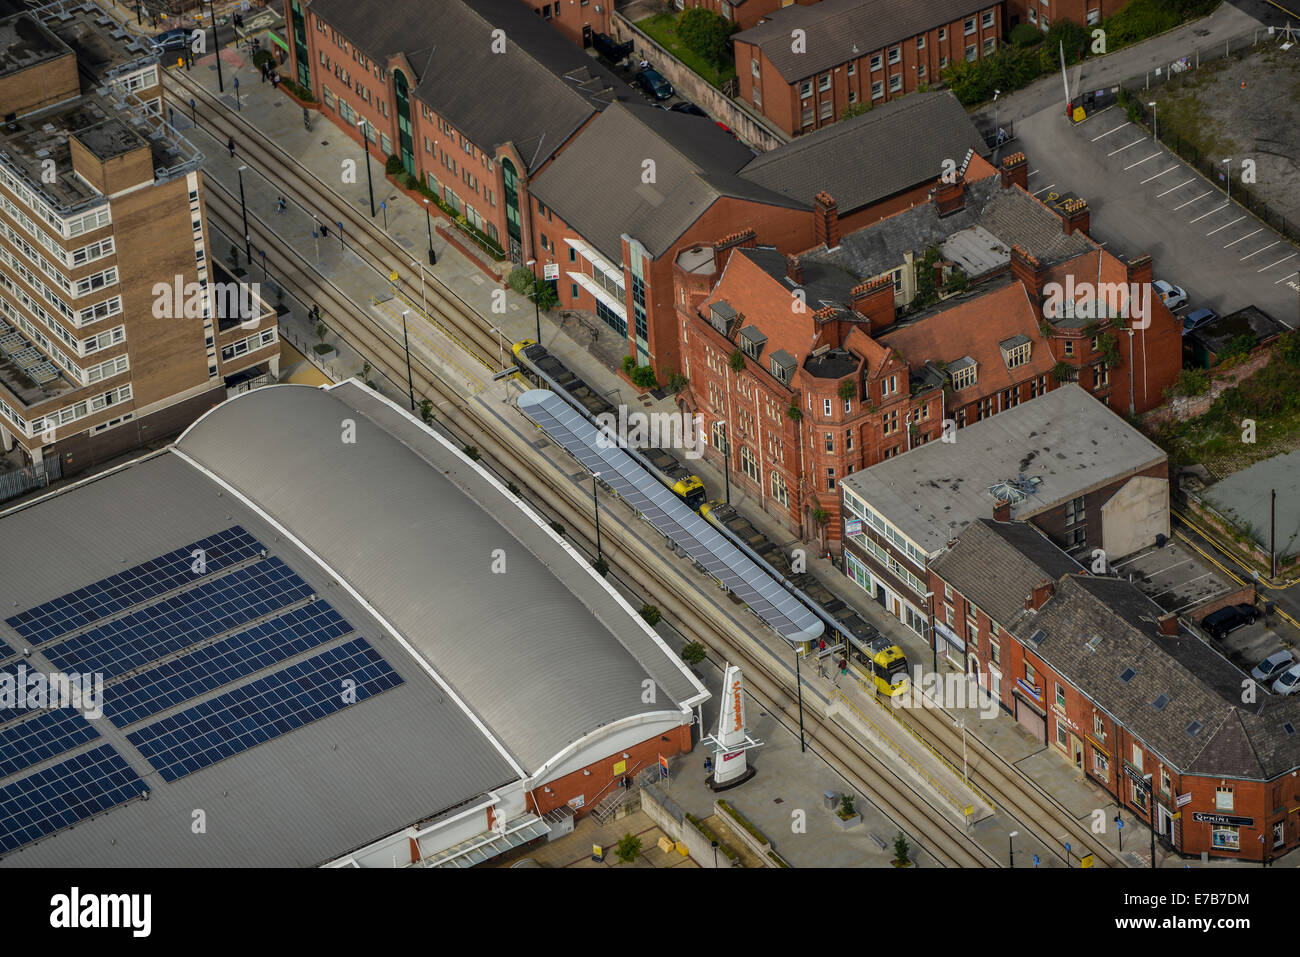 An aerial view of the Central Tram Station in Oldham, Greater Manchester - Stock Image